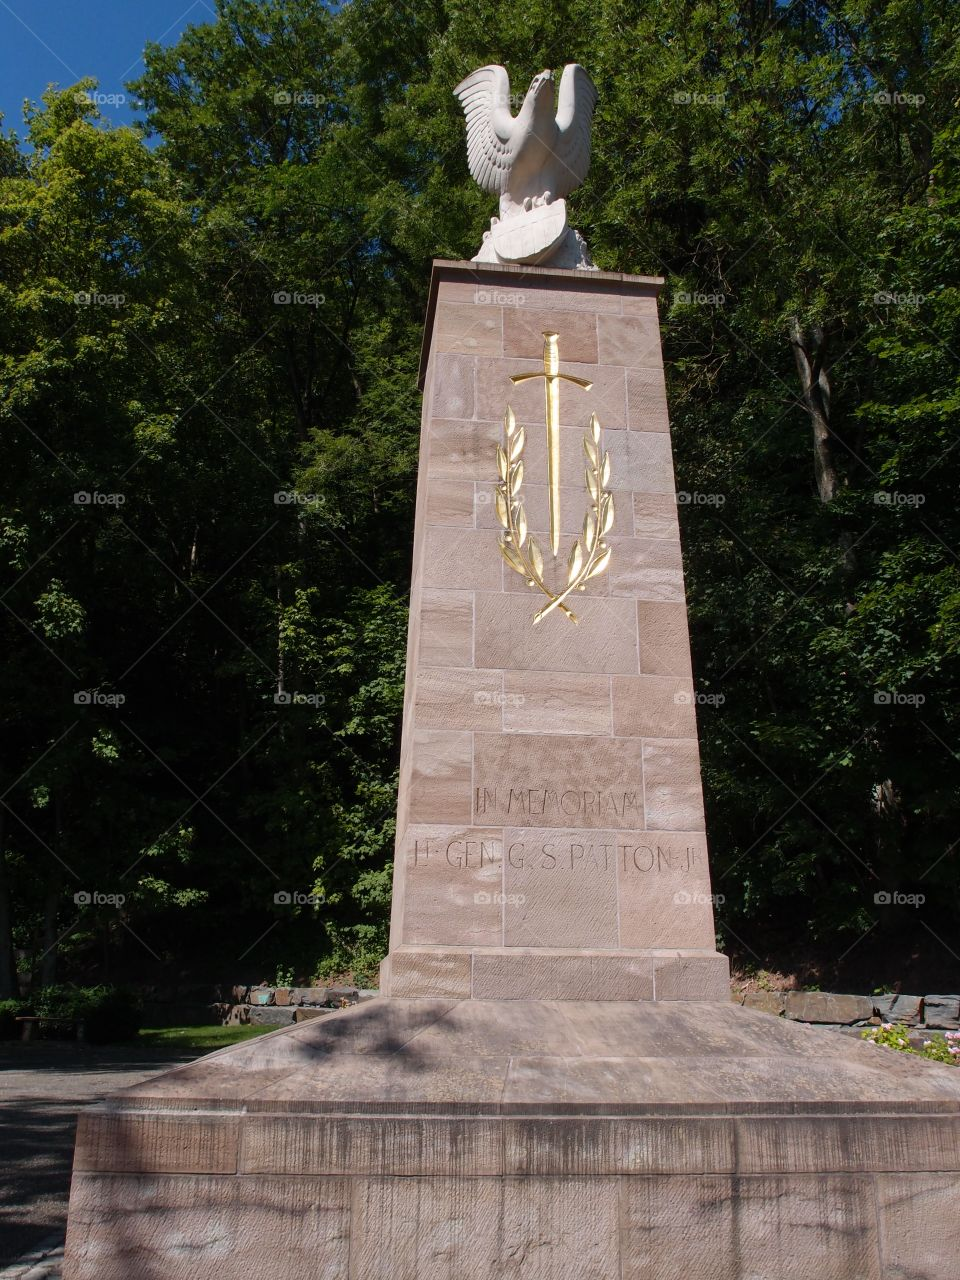 A monument to American World War II General George Patton in Luxembourg.